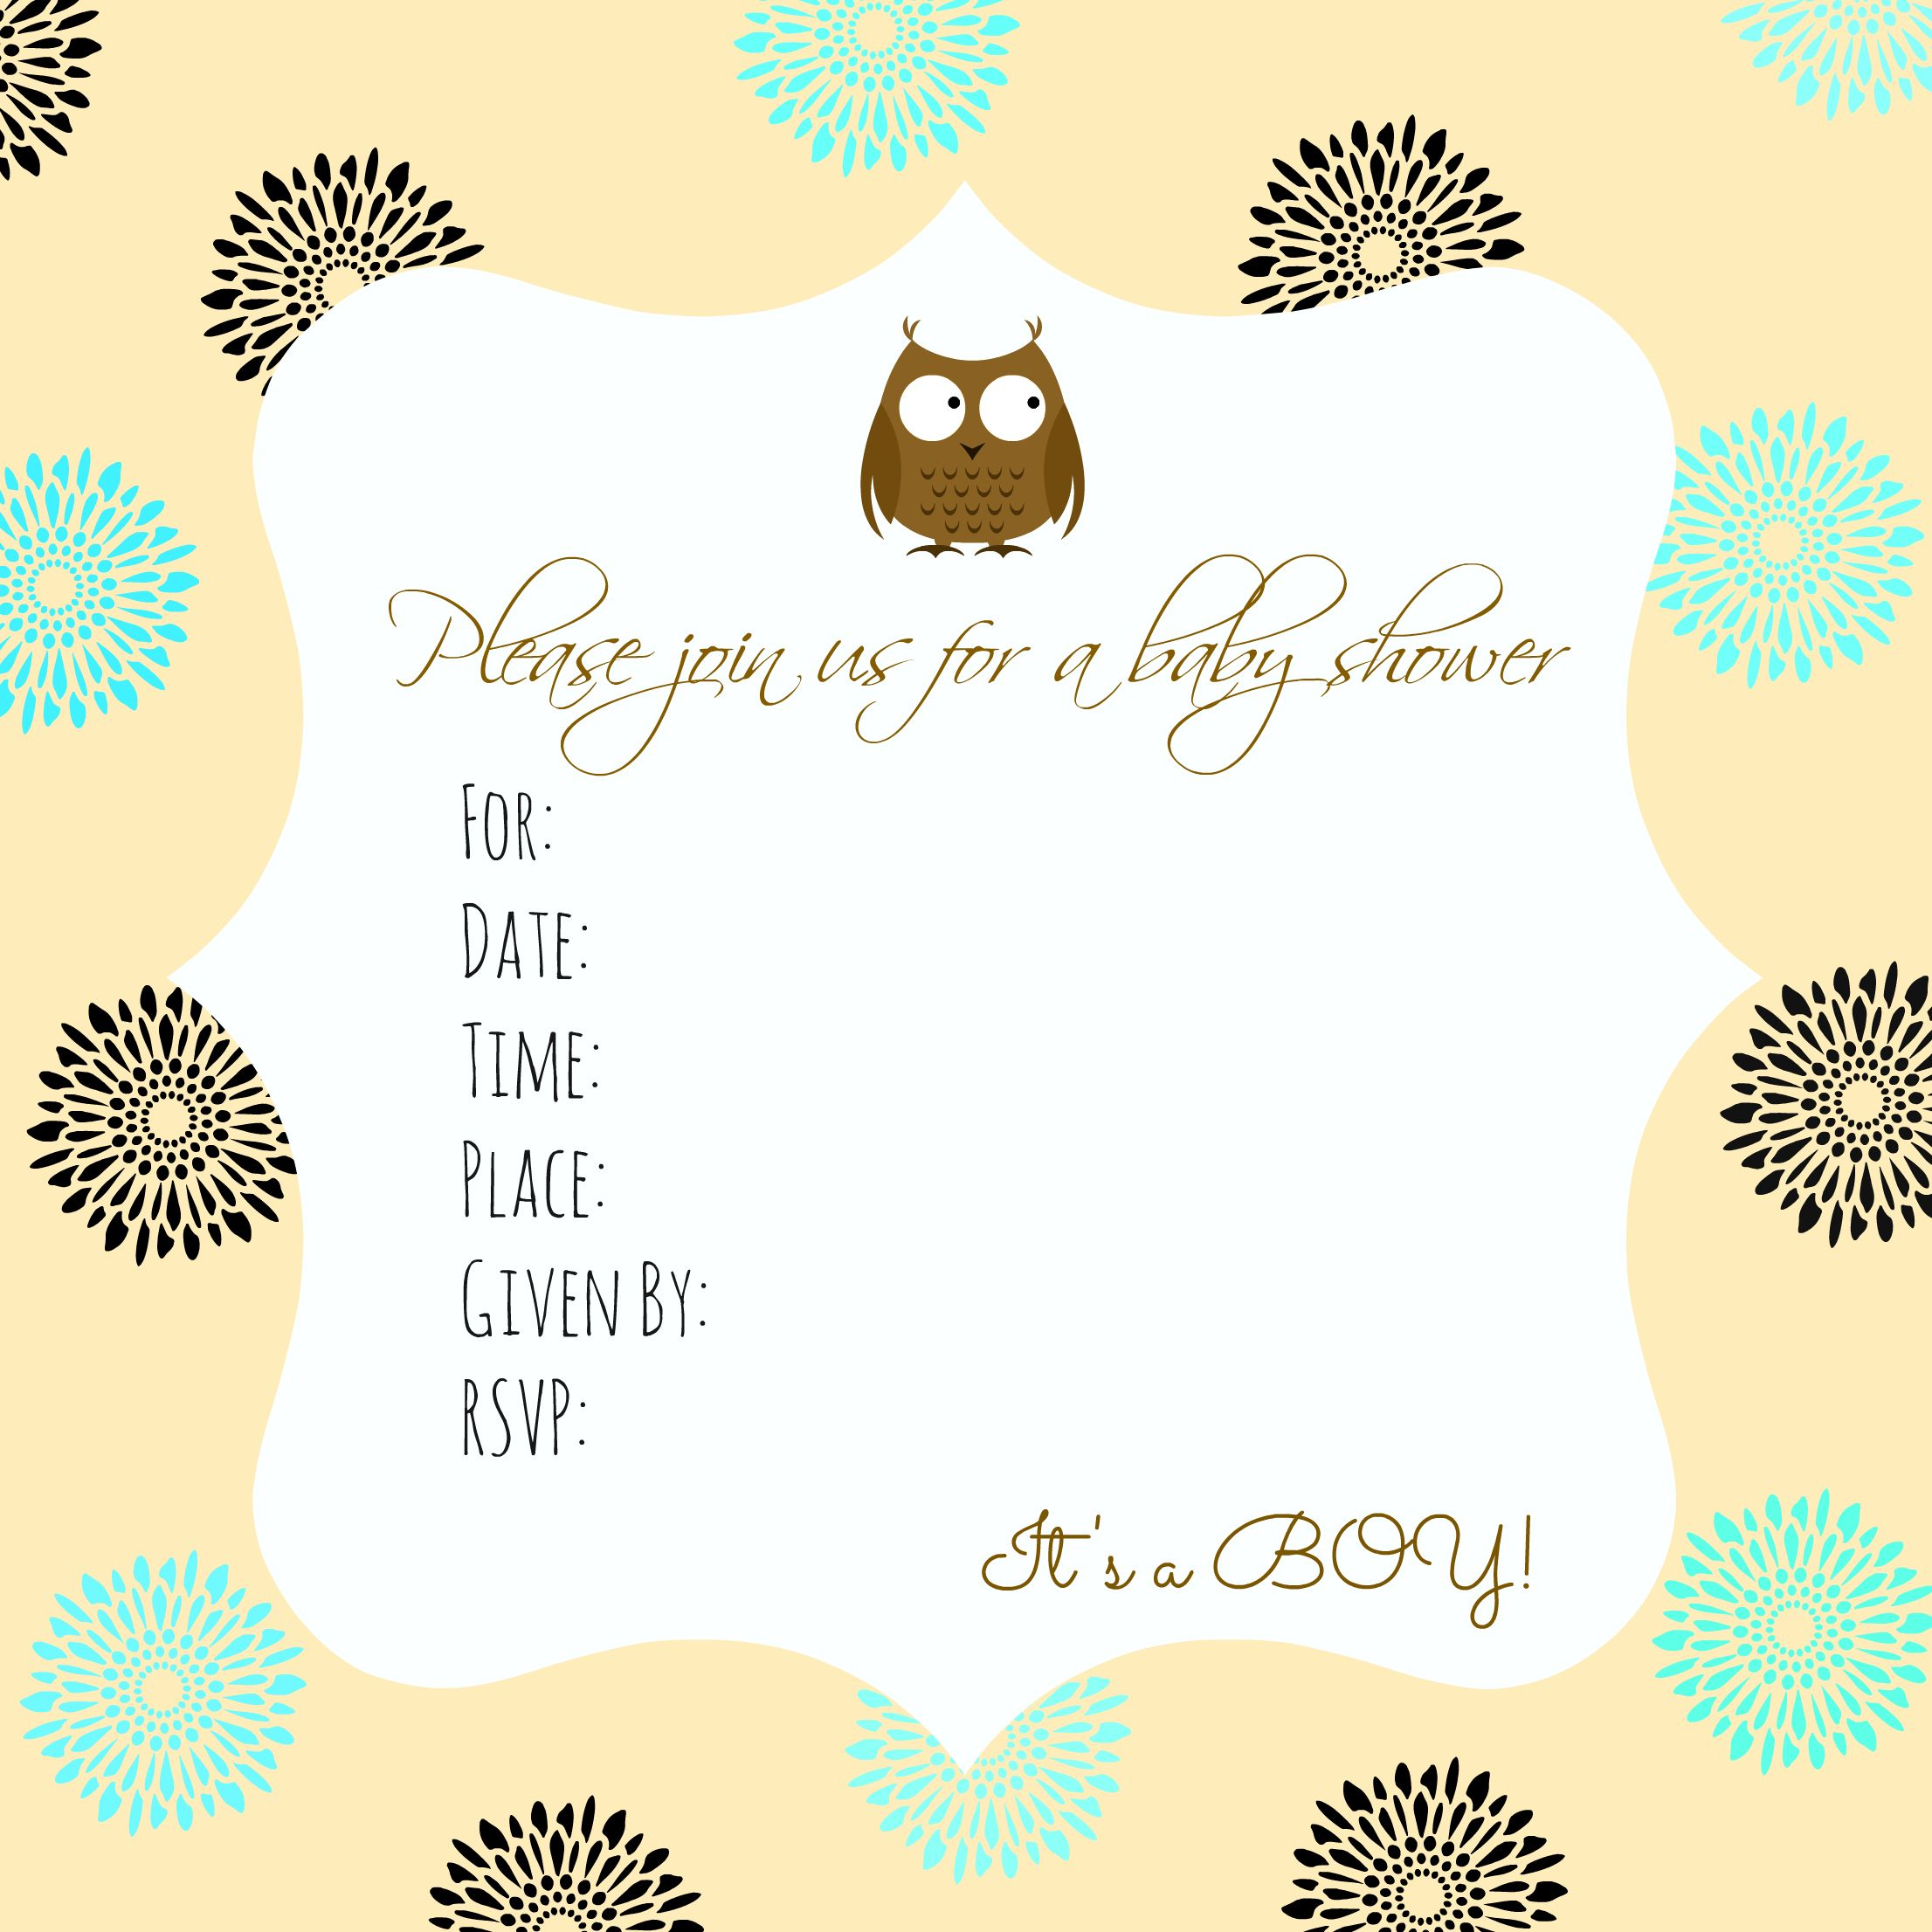 Free baby shower invitation printable. Baby Boy. Owl. | Free ...